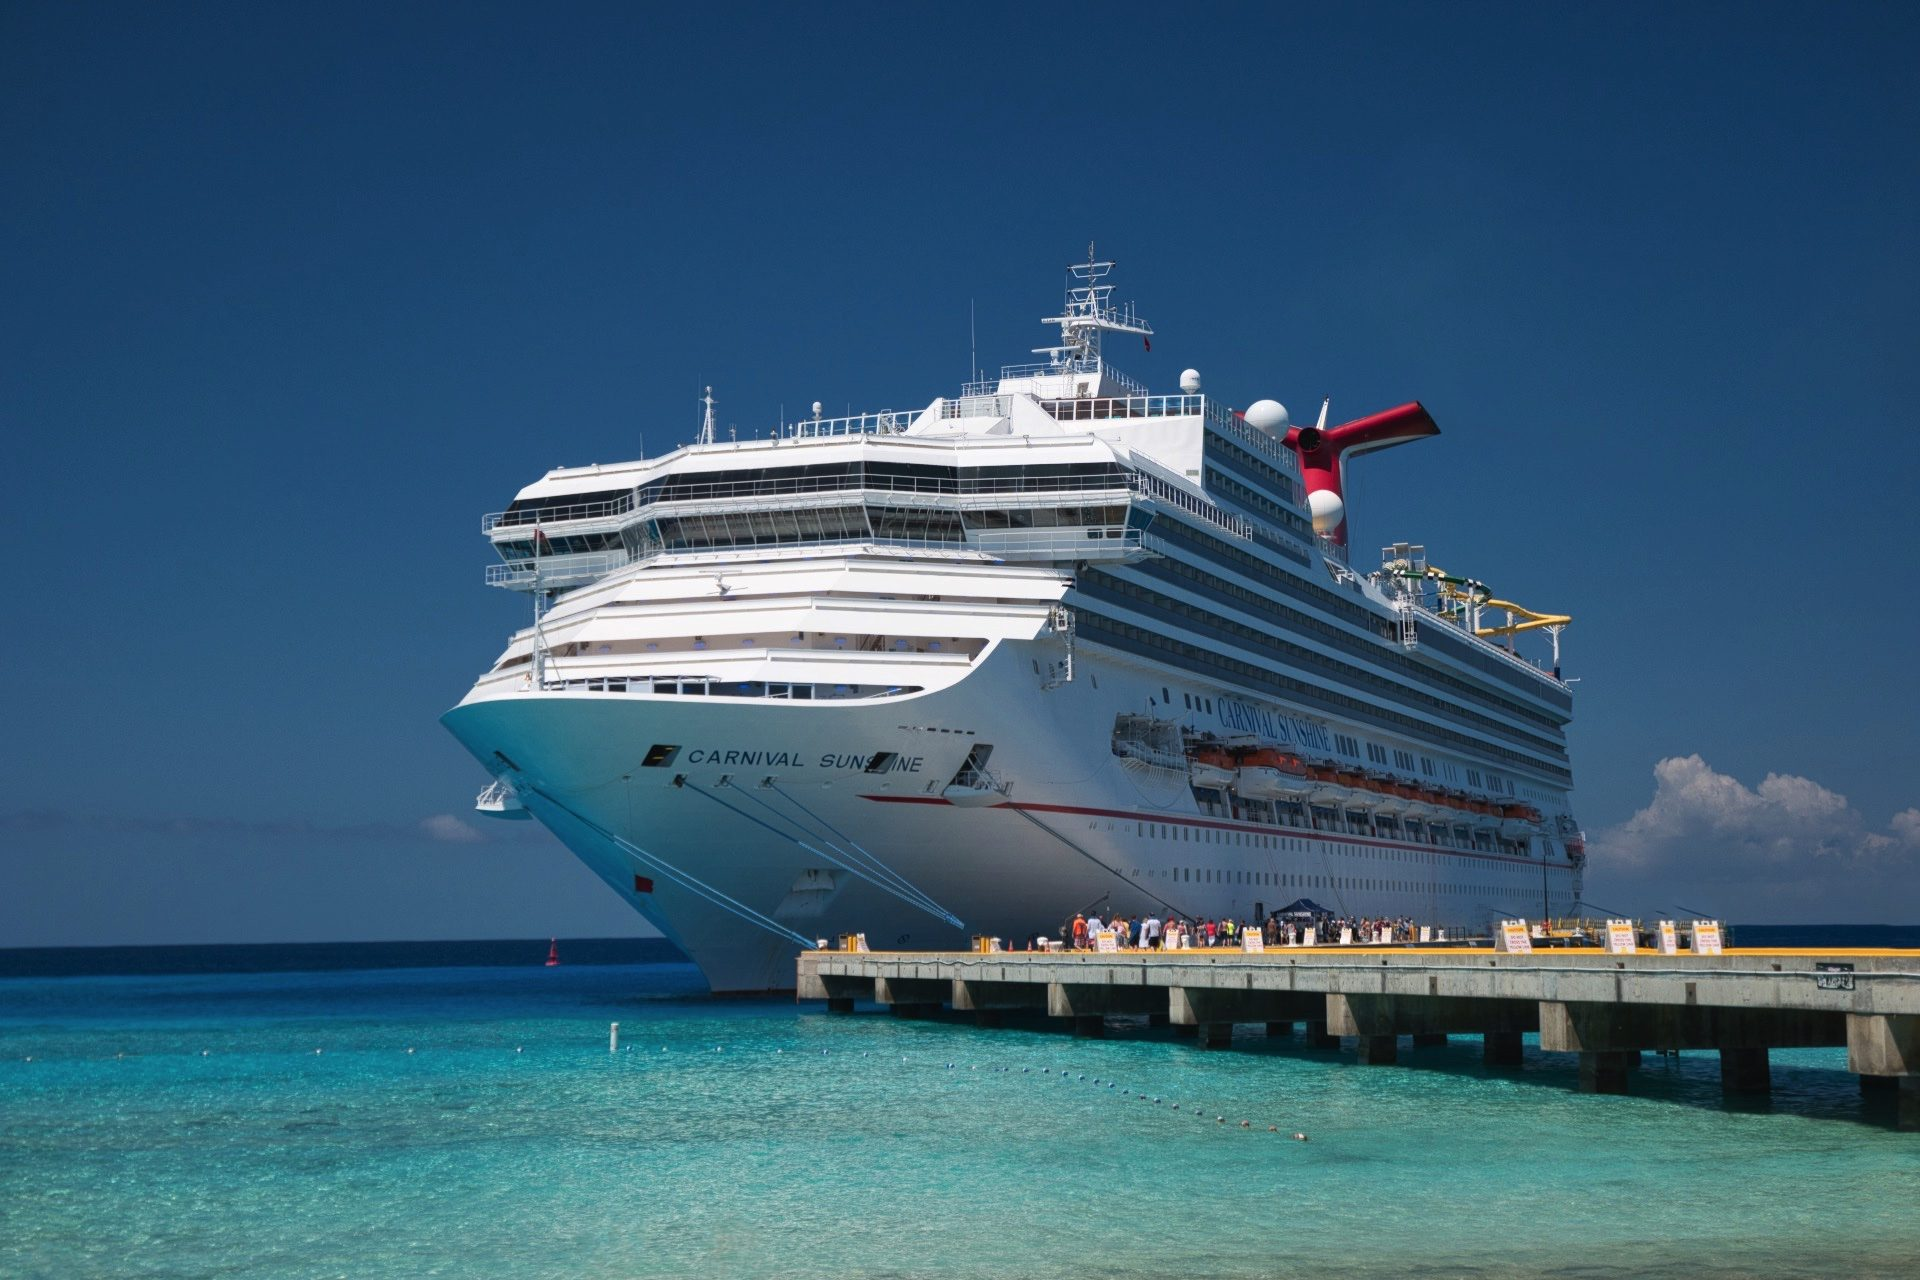 Carnival Sunshine 9-Day Eastern Caribbean Cruise